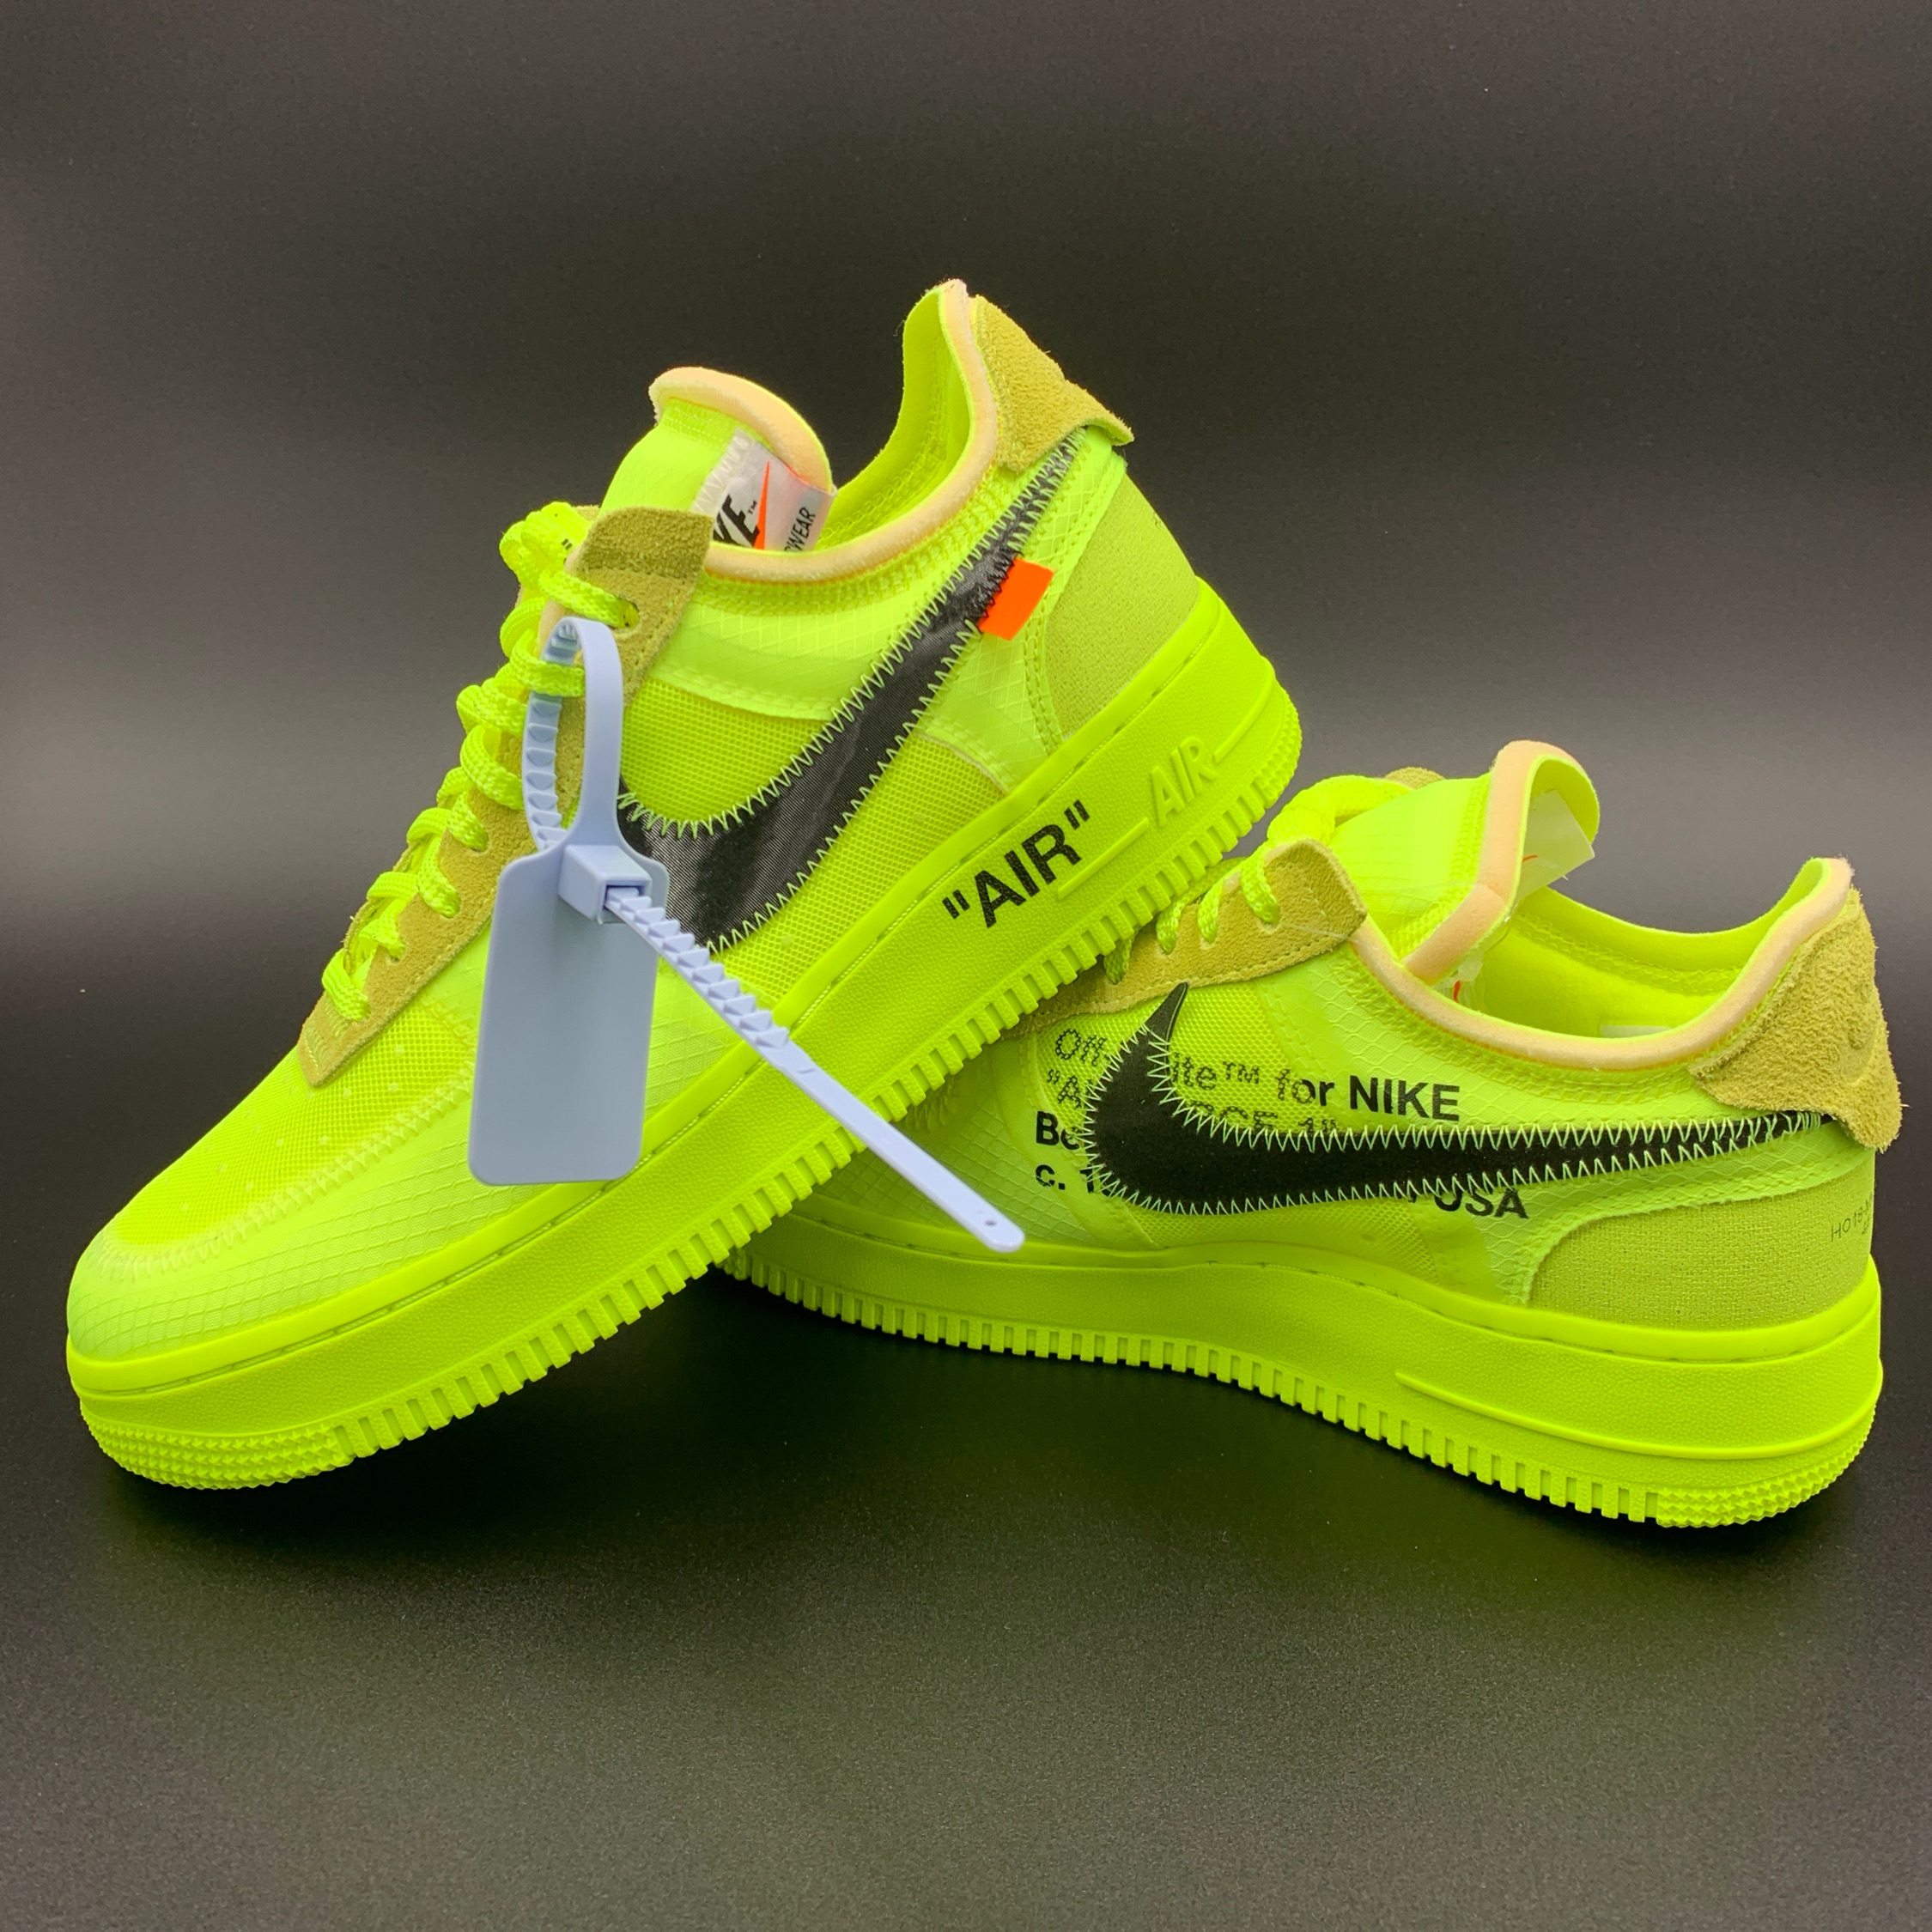 watch 302b2 18b4c Nike Air Force 1 Low Off-White Volt